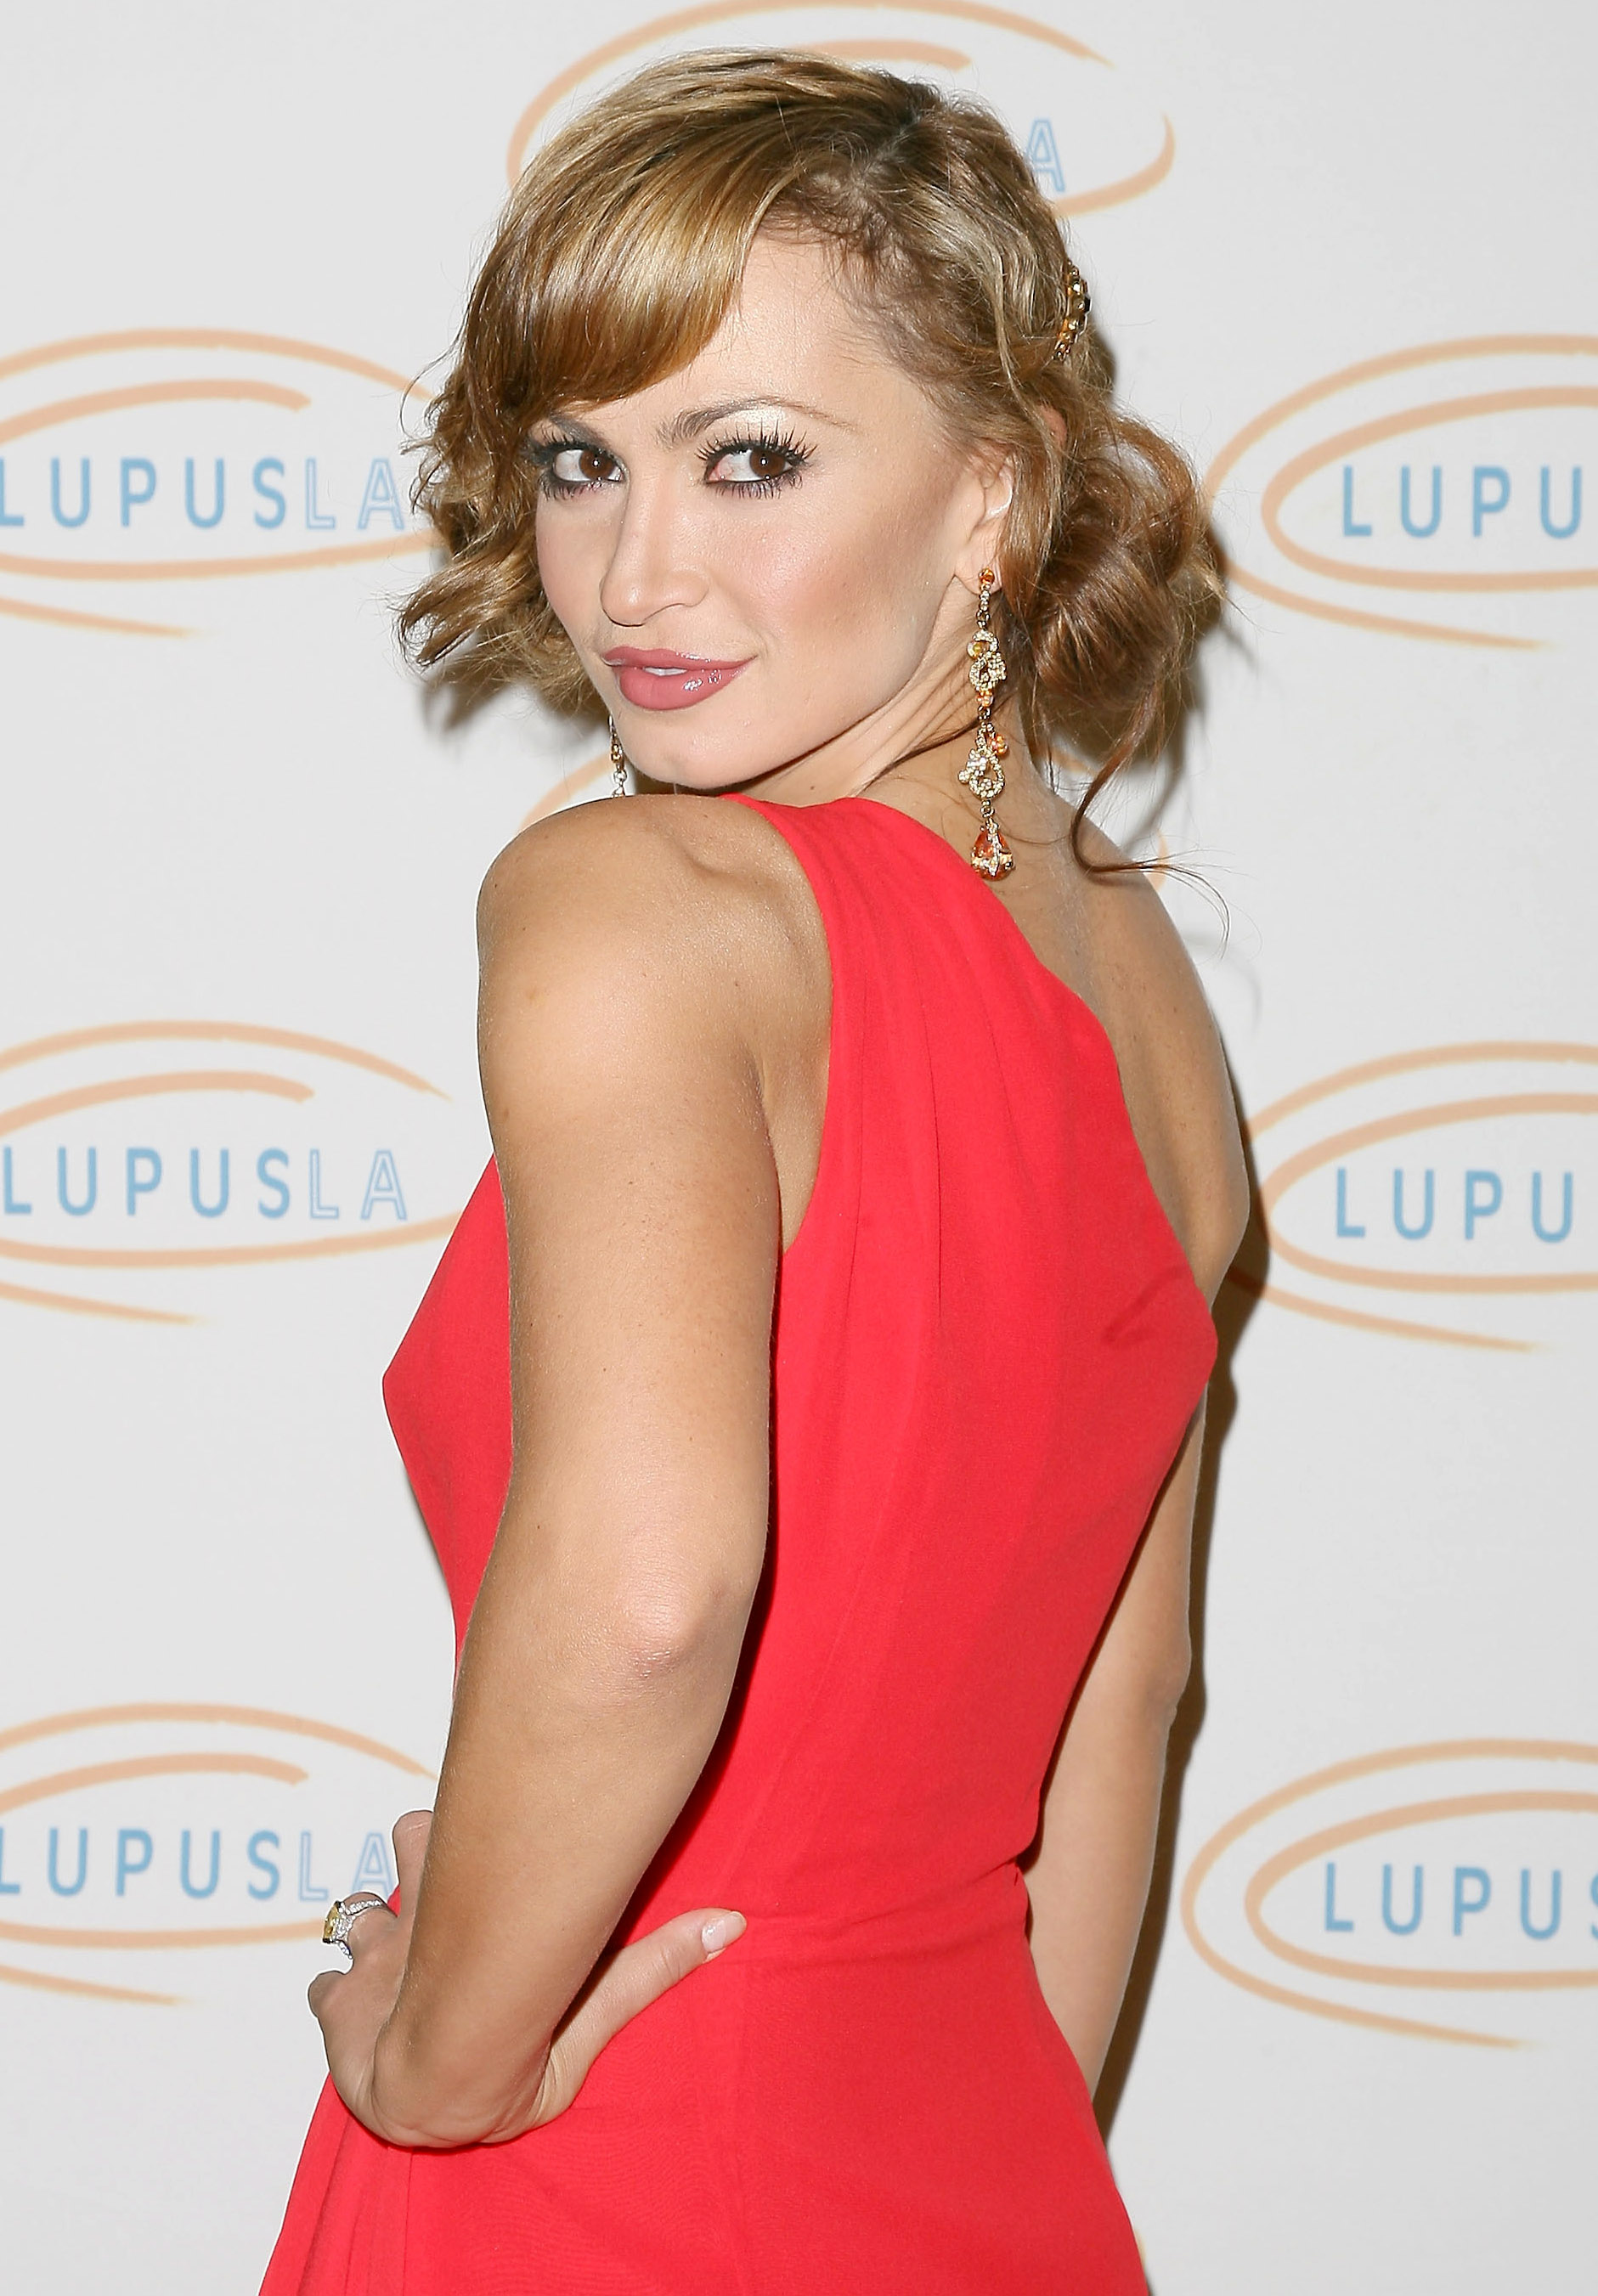 31086_Karina_Smirnoff_2008-11-07_-_Lupus_LA4s_Sixth_Annual_Hollywood_Bag_Ladies_Luncheon_in_Beverly_H_9230_122_642lo.jpg